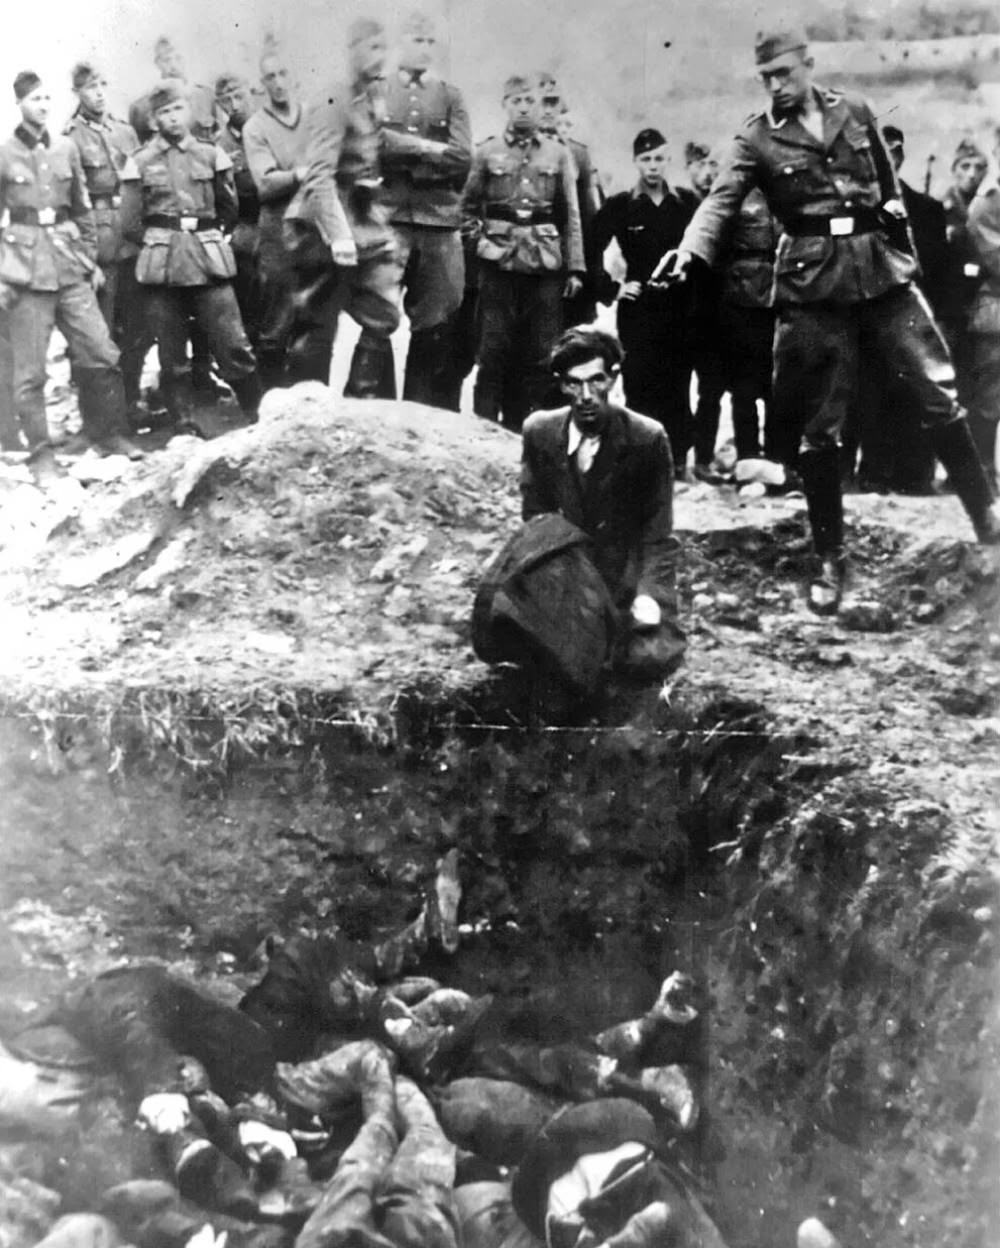 """""""The last Jew in Vinnitsa"""" – Member of Einsatzgruppe D (a Nazi SS death squad) is just about to shoot a Jewish man kneeling"""